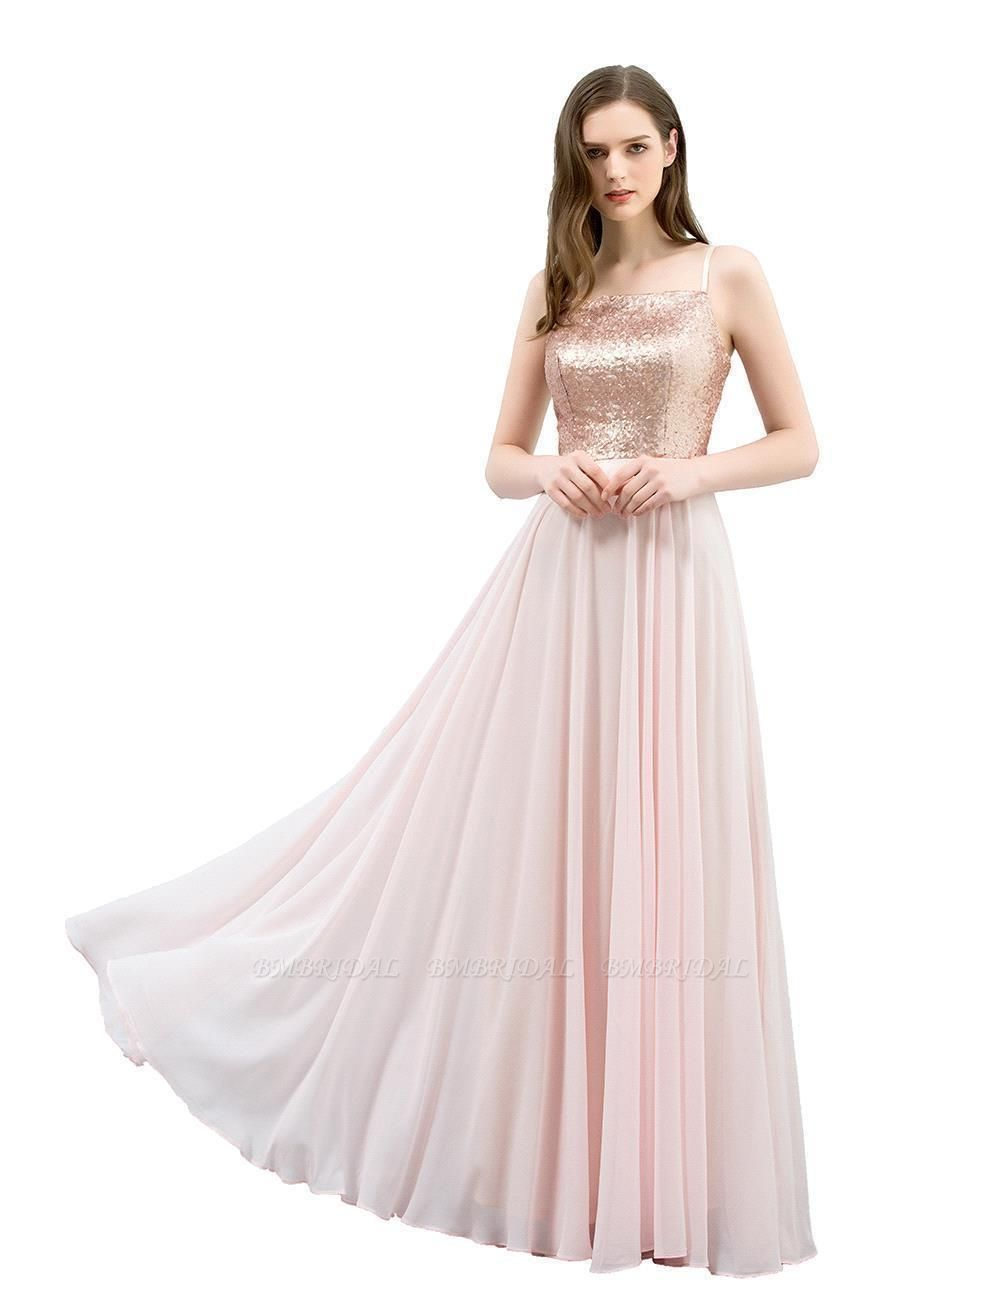 BMbridal A-line Floor Length Spaghetti Sequined Top Chiffon Prom Dress